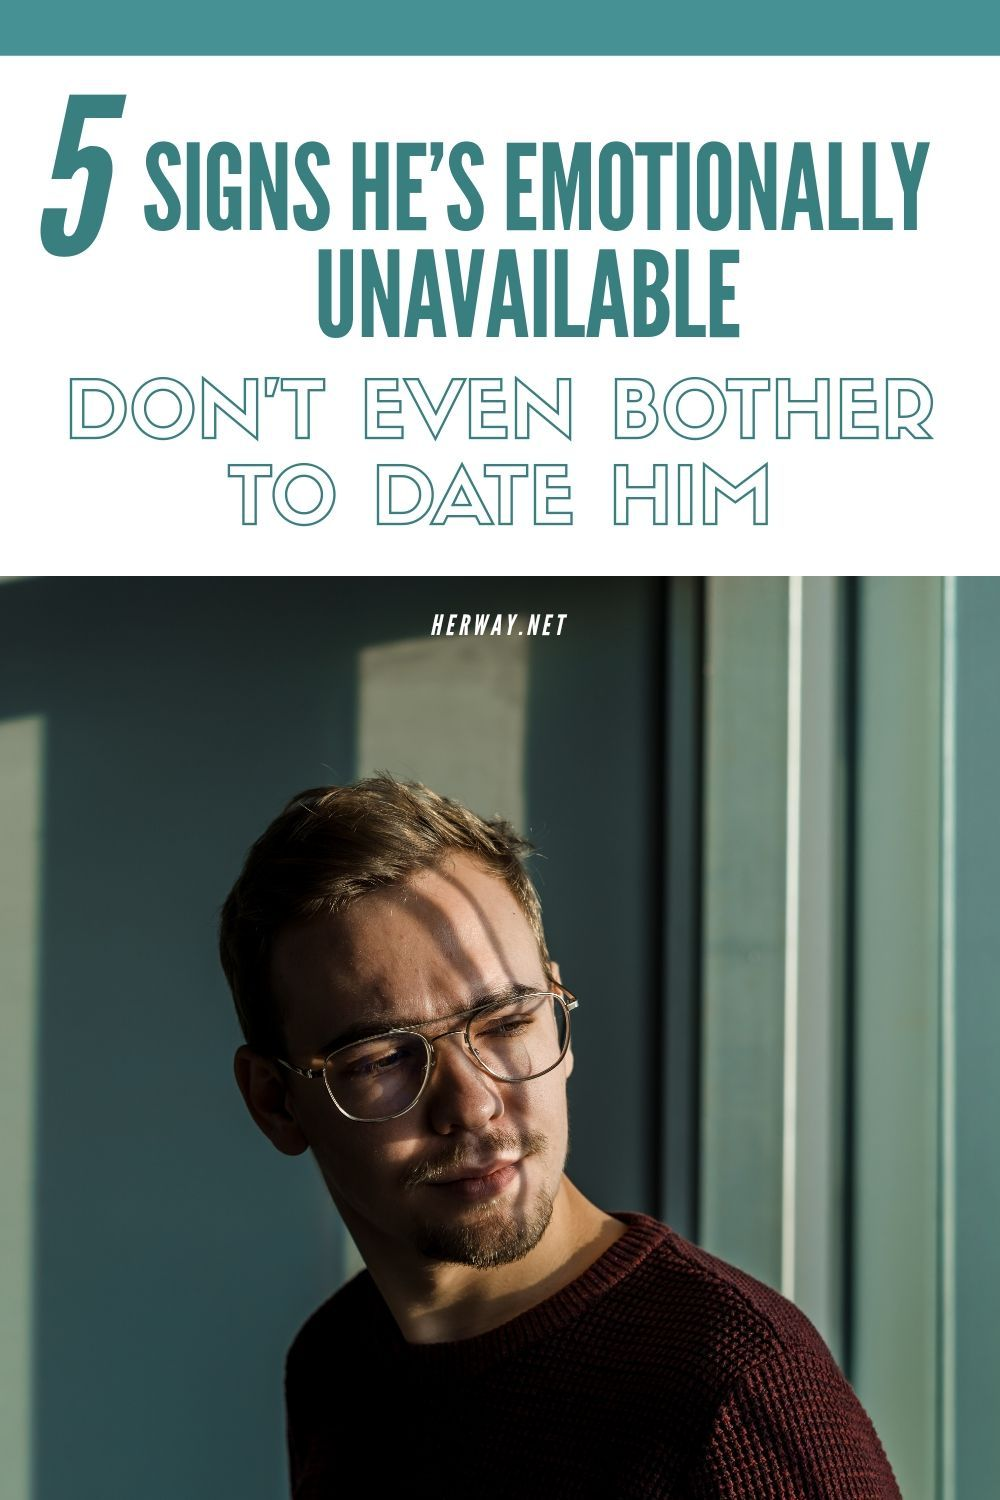 heartbreak of dating an emotionally unavailable guy